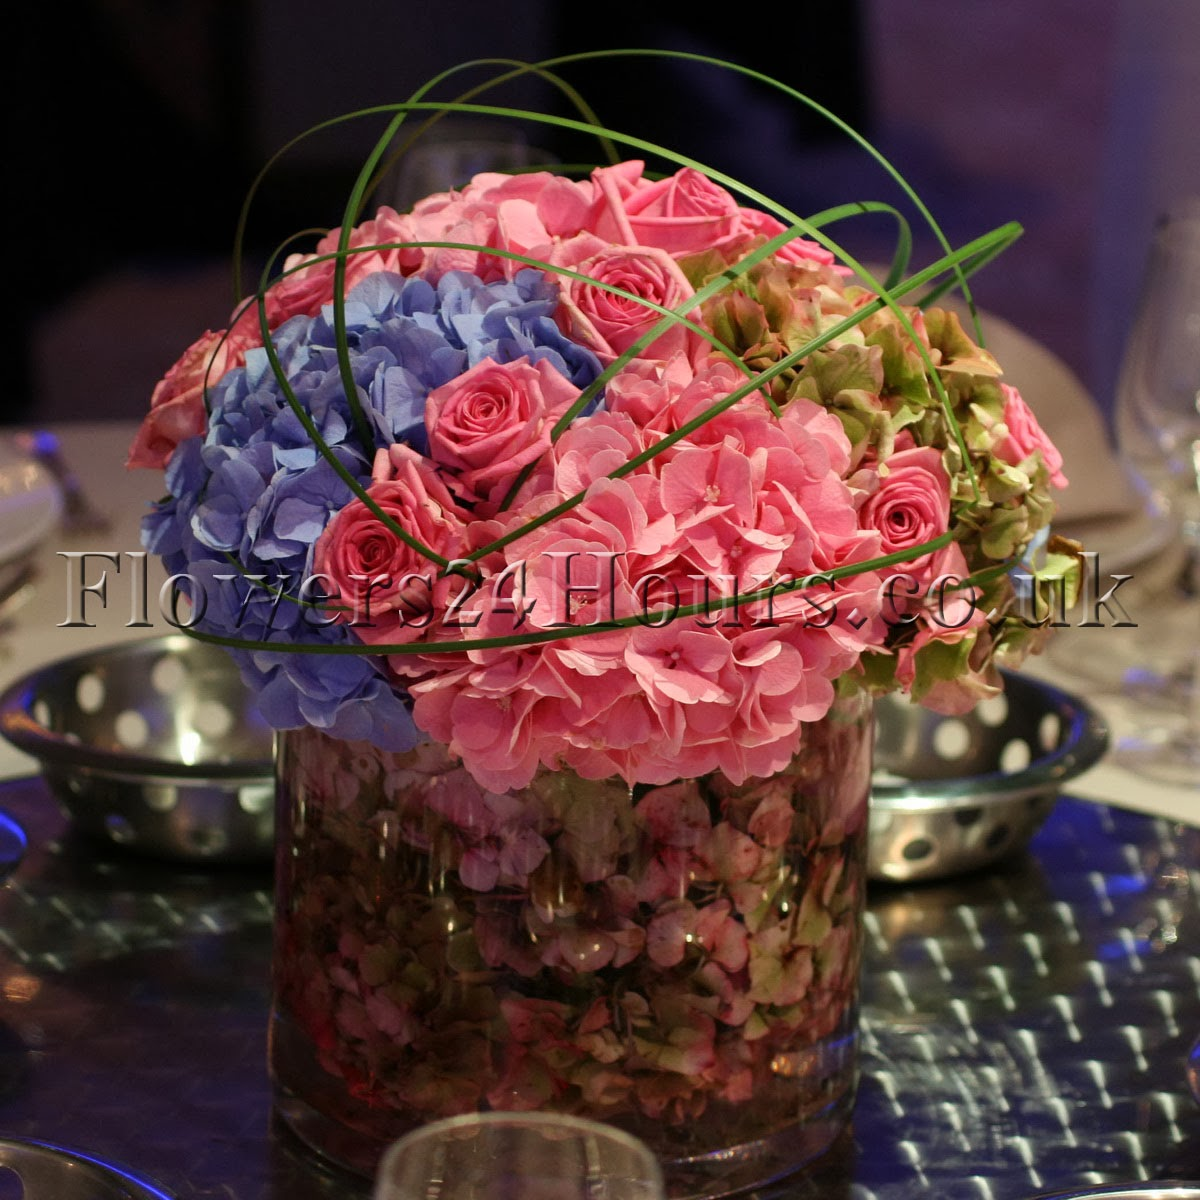 Colourful decorations for winter parties flowers blog flowers flowers24hours flowers delivery uk florists online florist and gifts uk shop izmirmasajfo